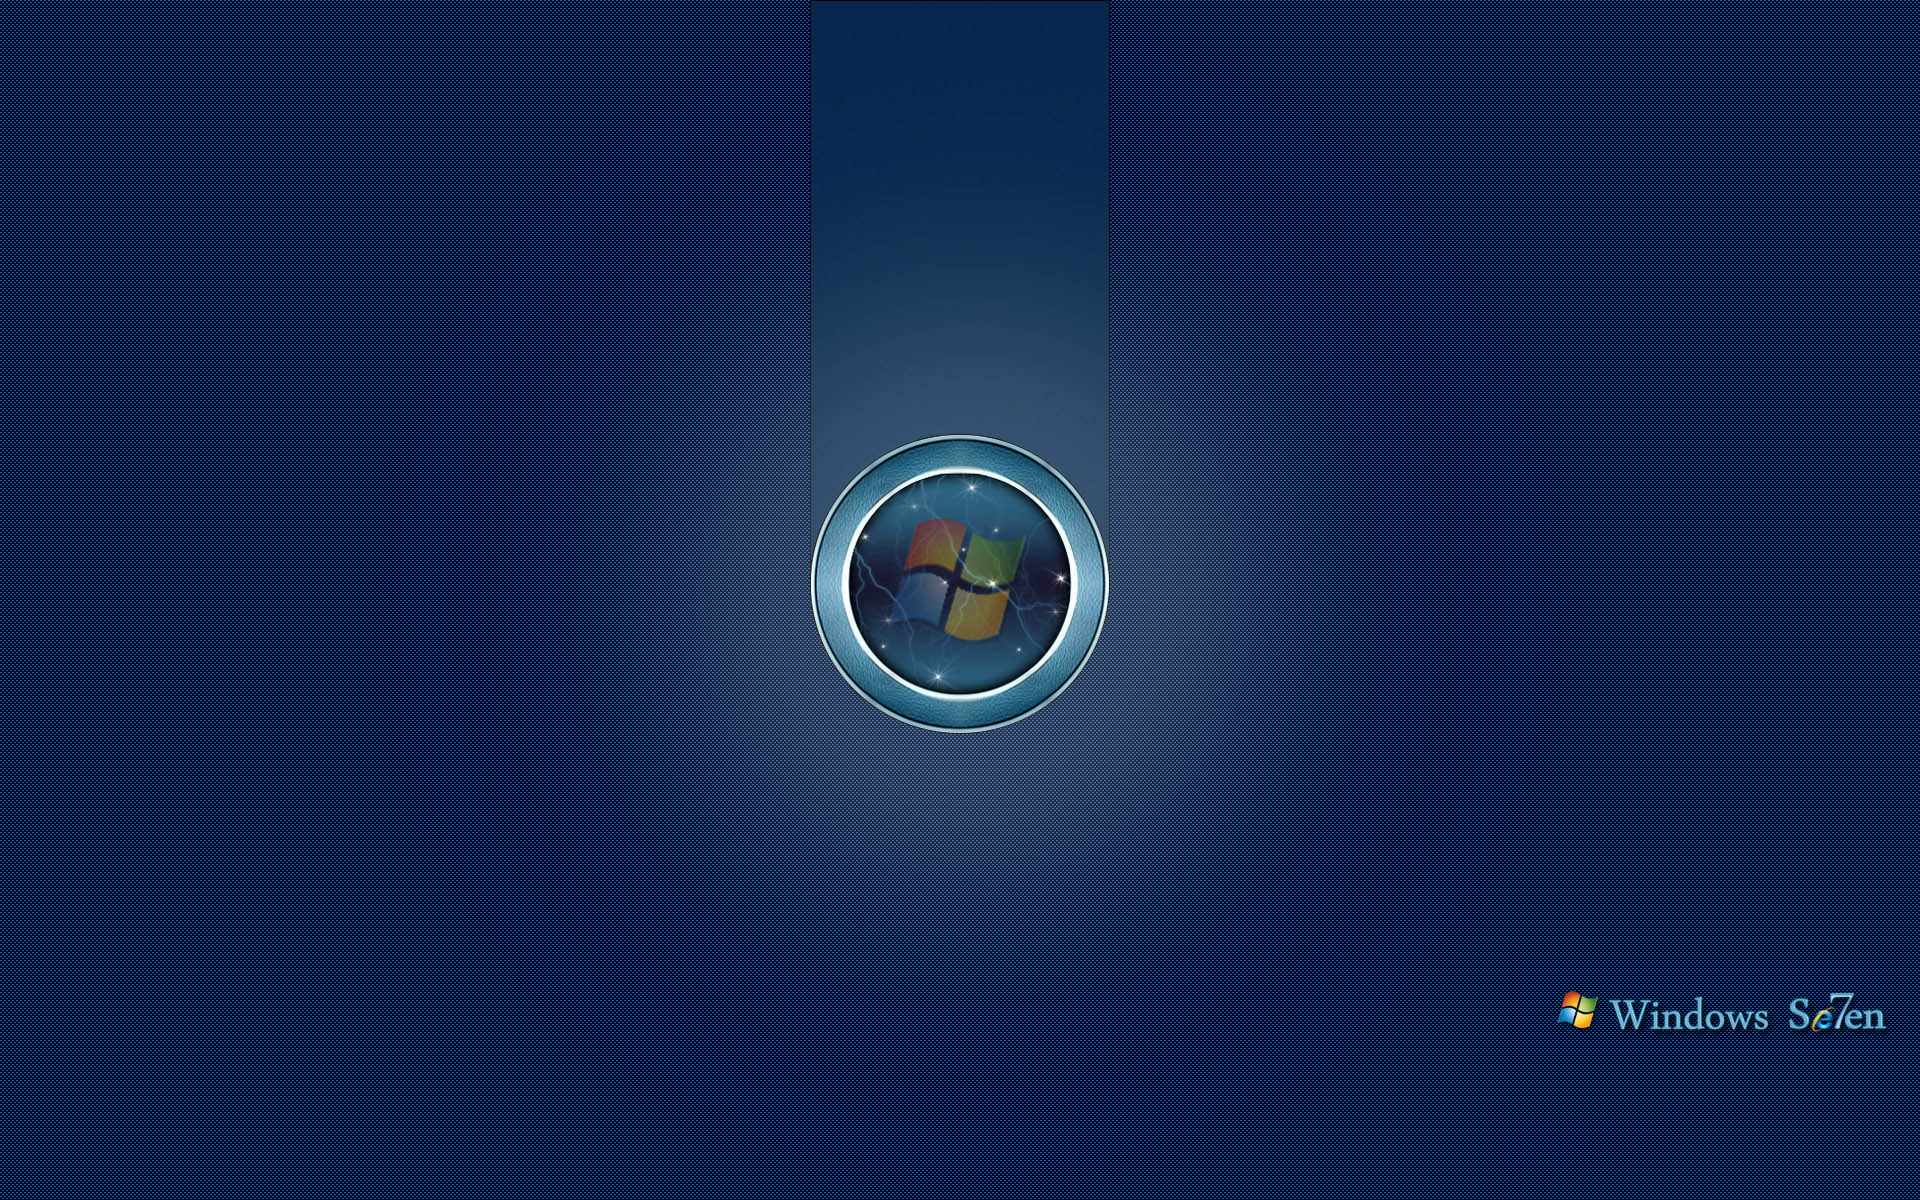 Windows 7 1920x1200 061